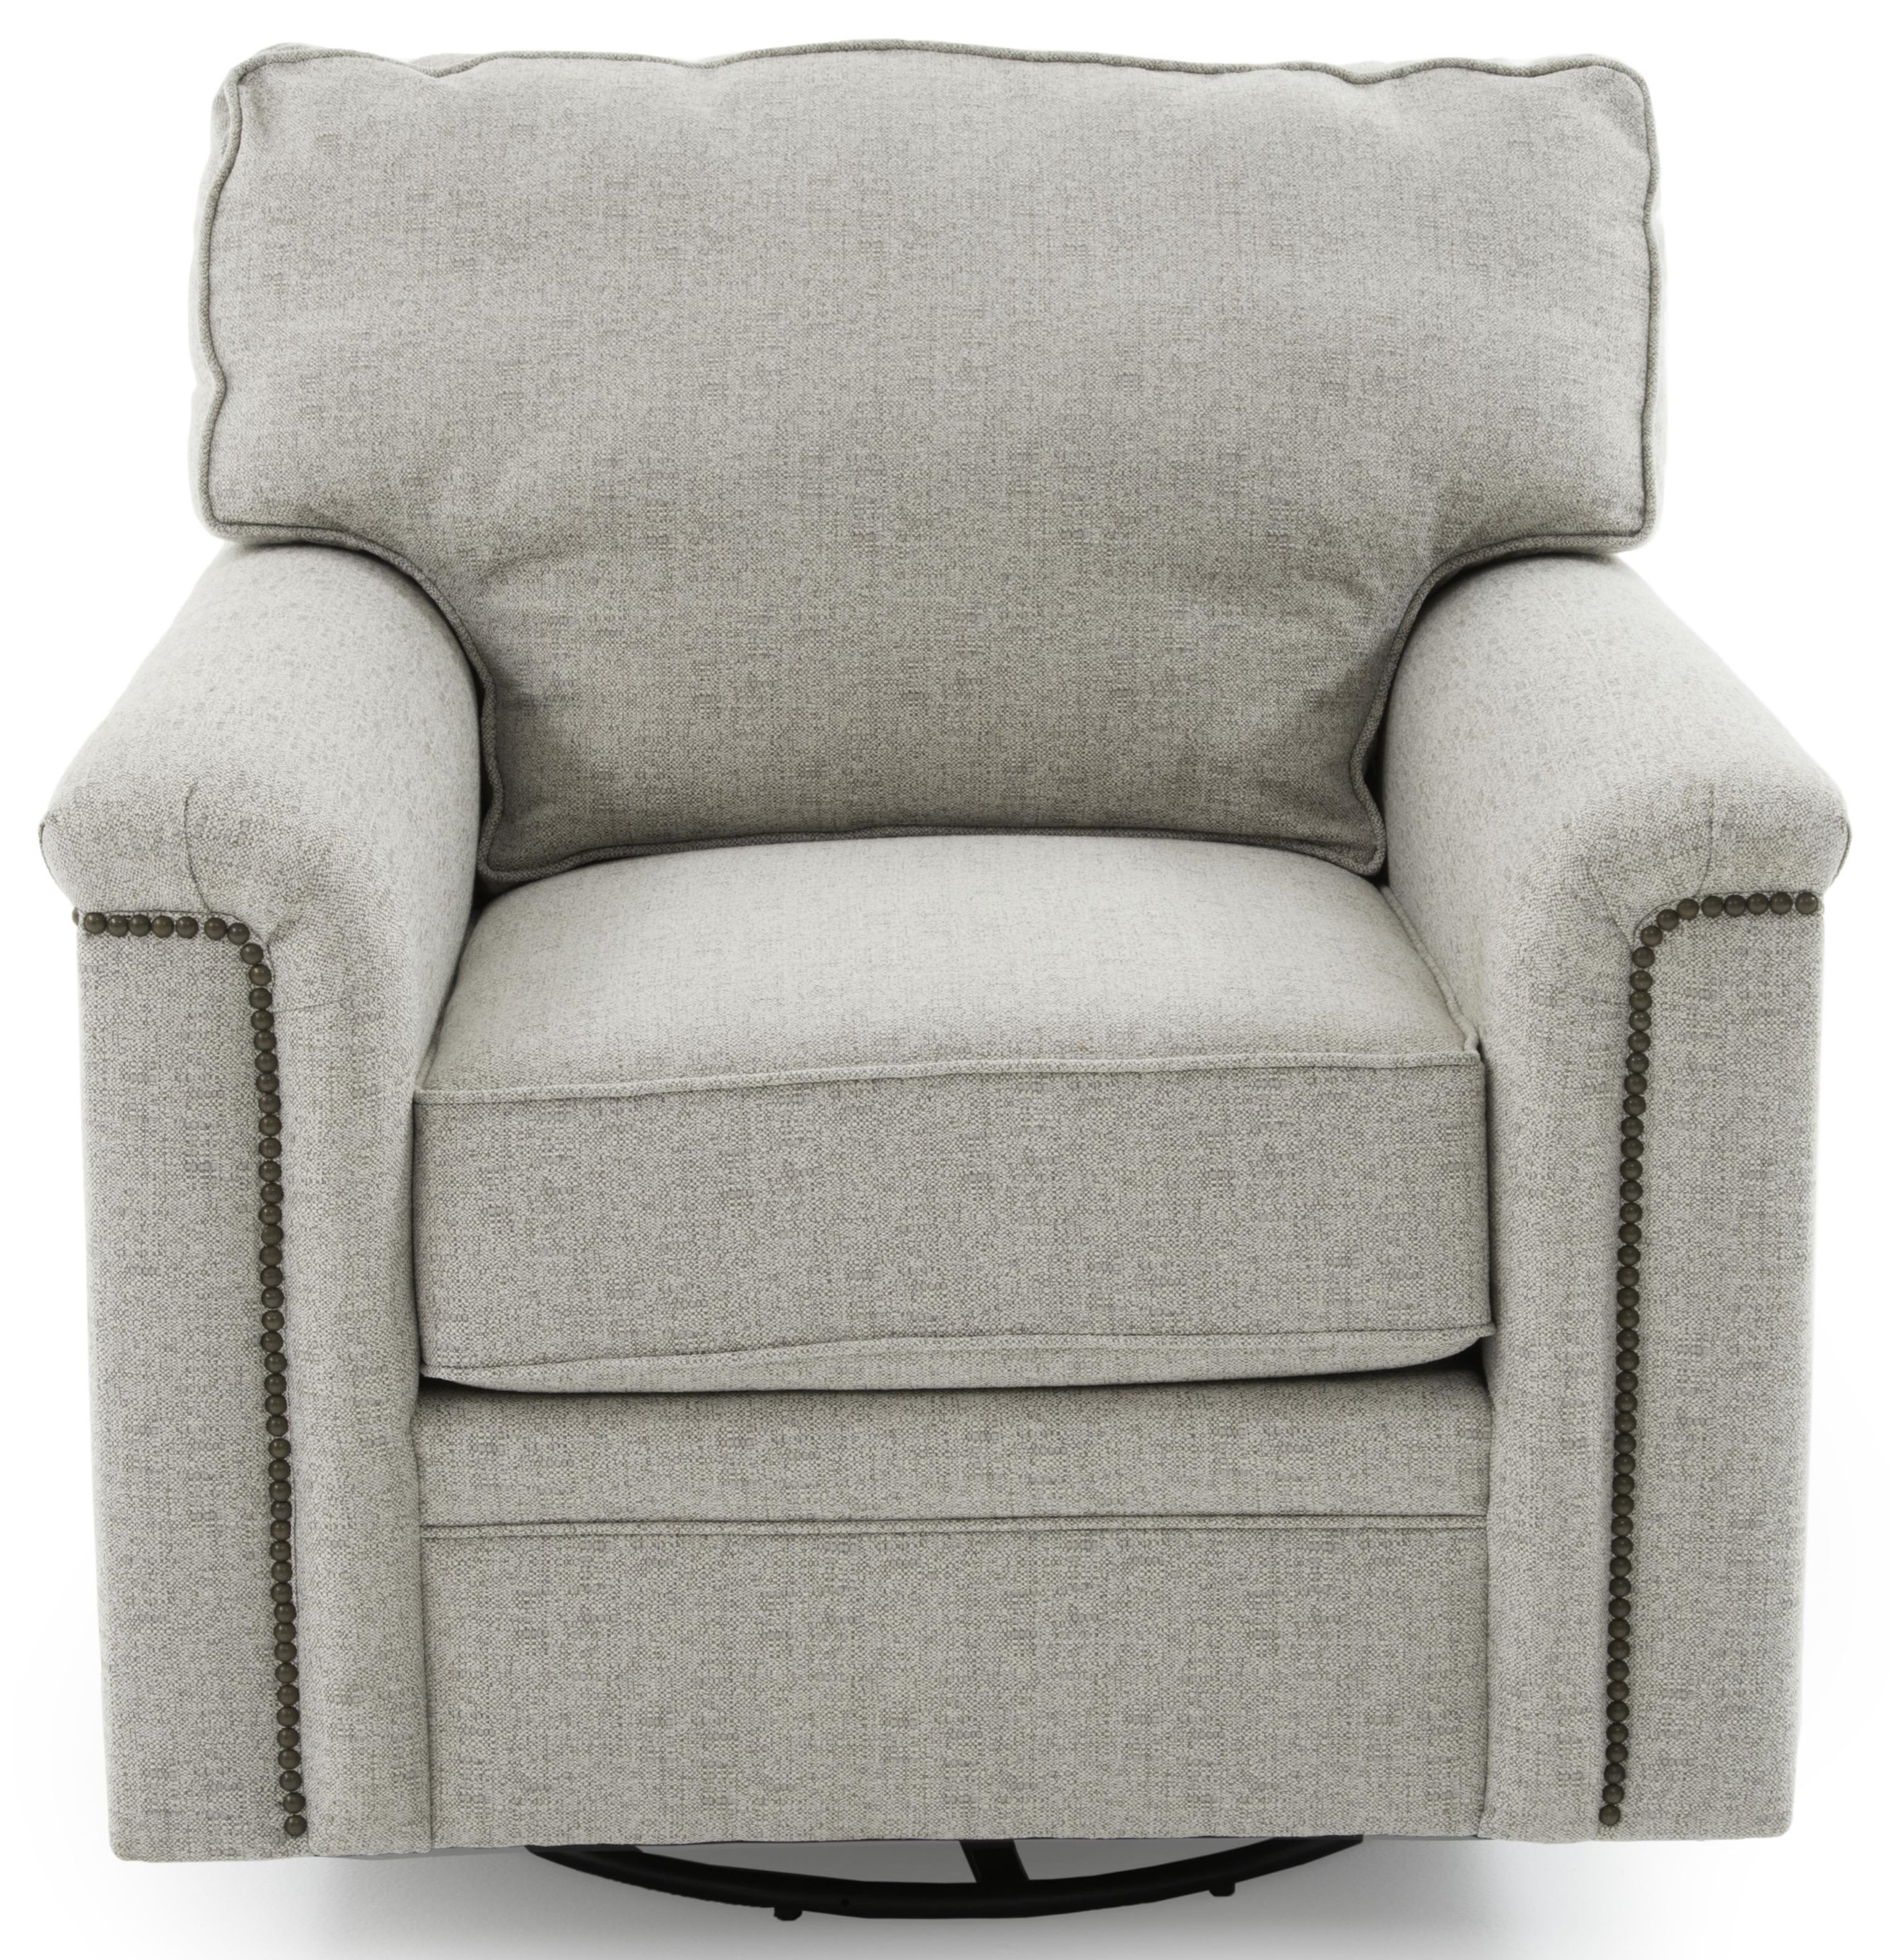 Warren Swivel Chair by Stone & Leigh Furniture at Baer's Furniture